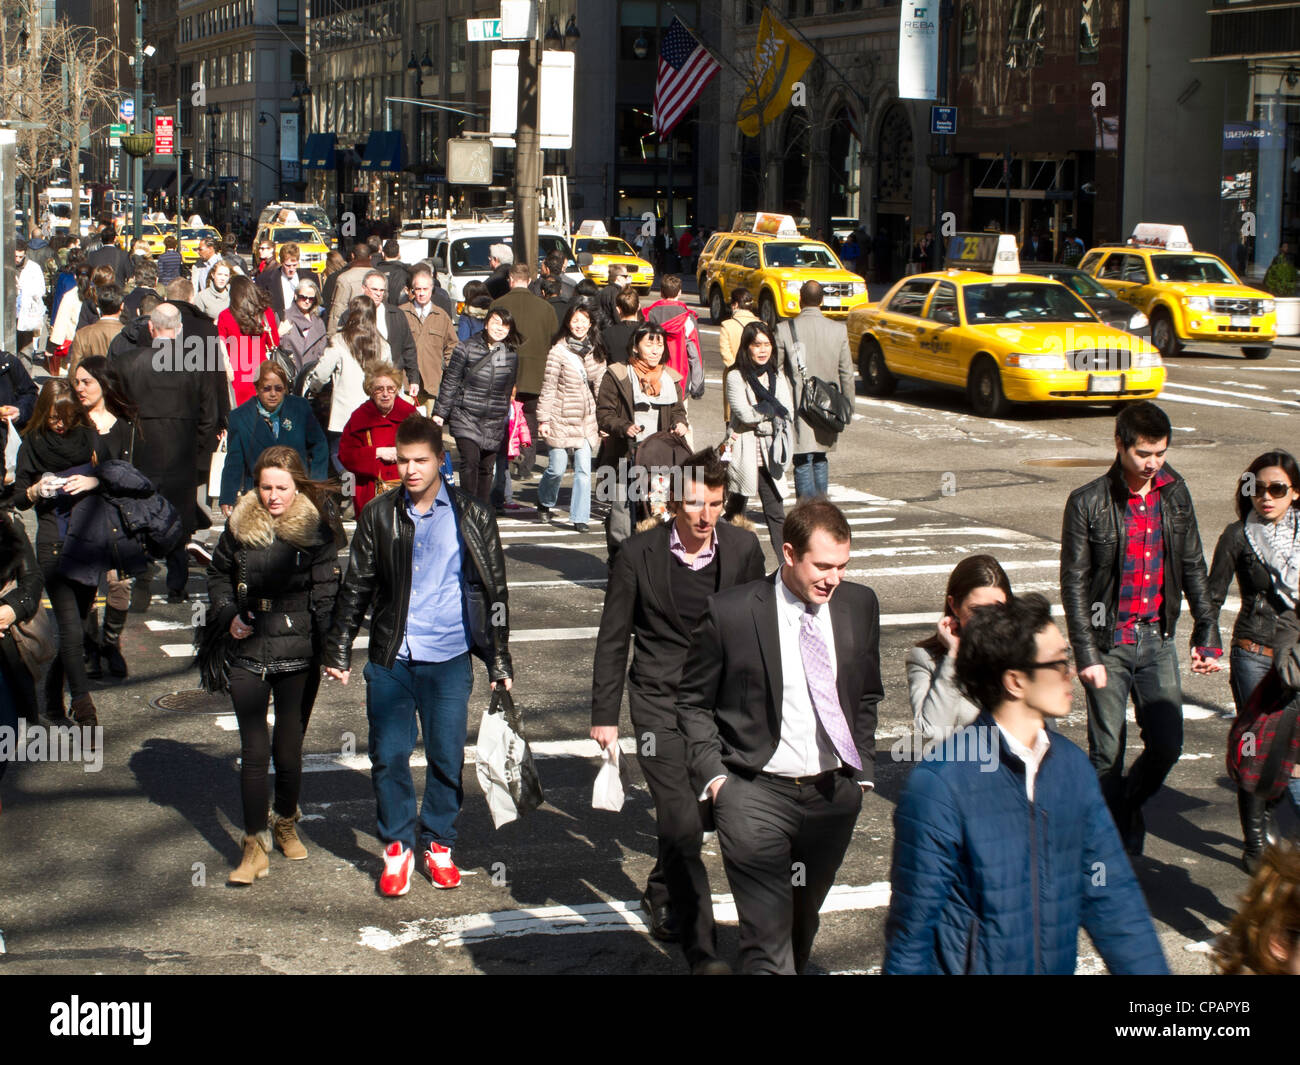 Crowds, 42nd Street and Fifth Avenue, NYC - Stock Image